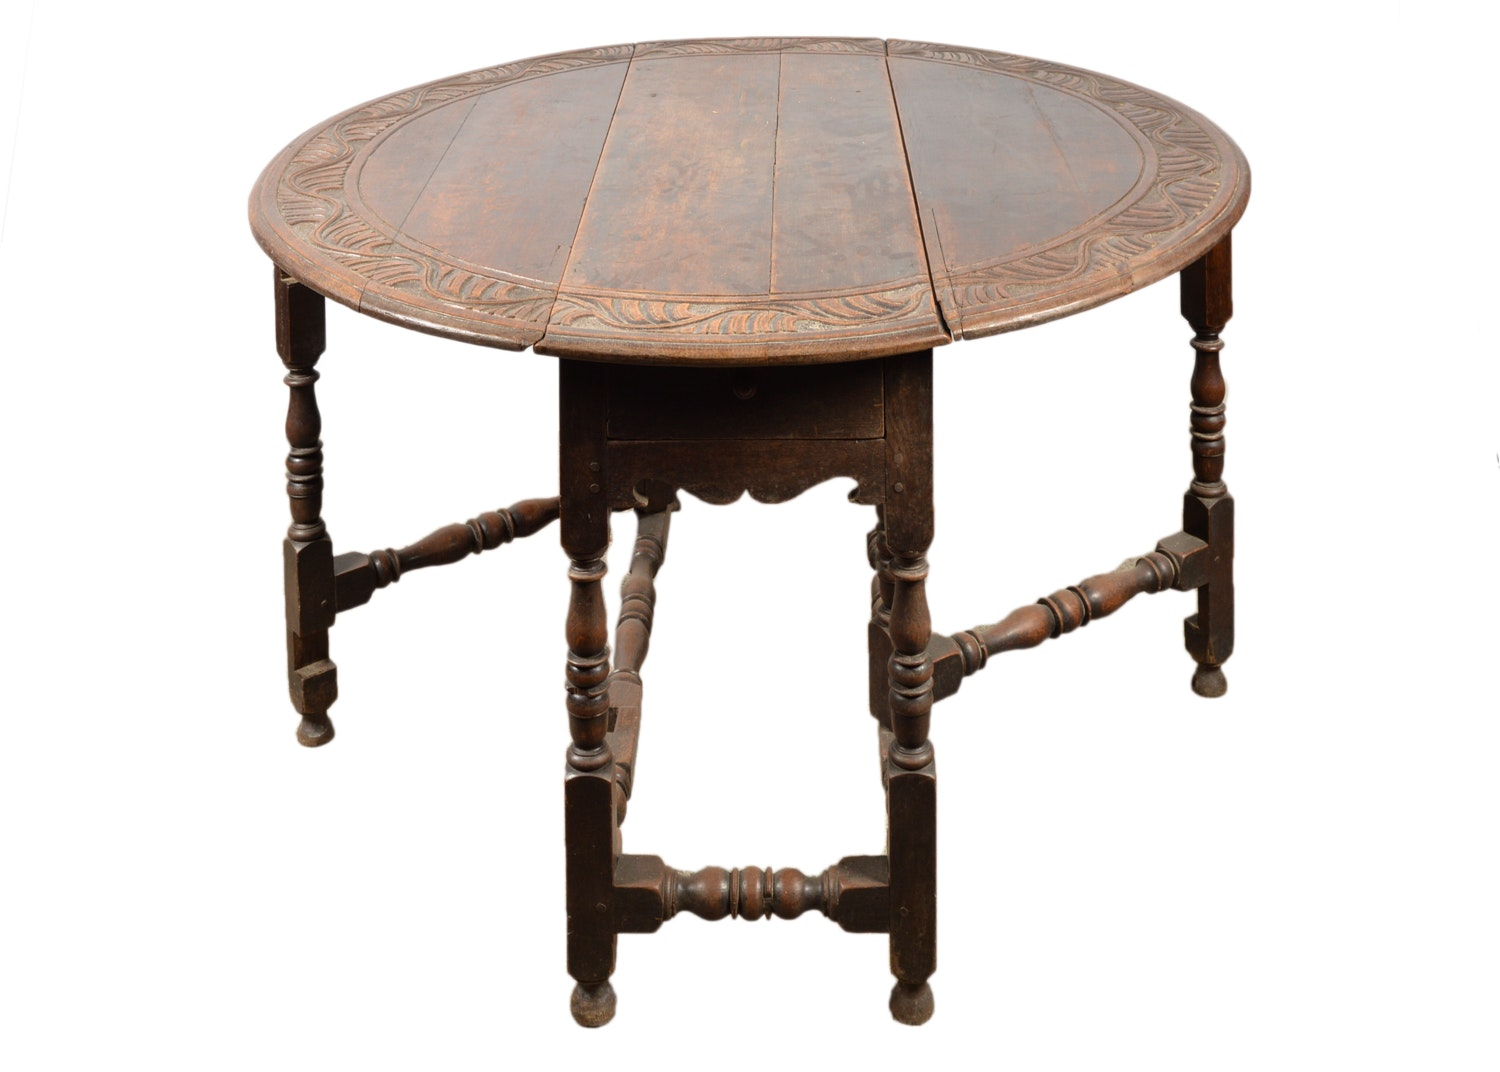 Antique William and Mary Style Oak Drop Leaf Dining Table